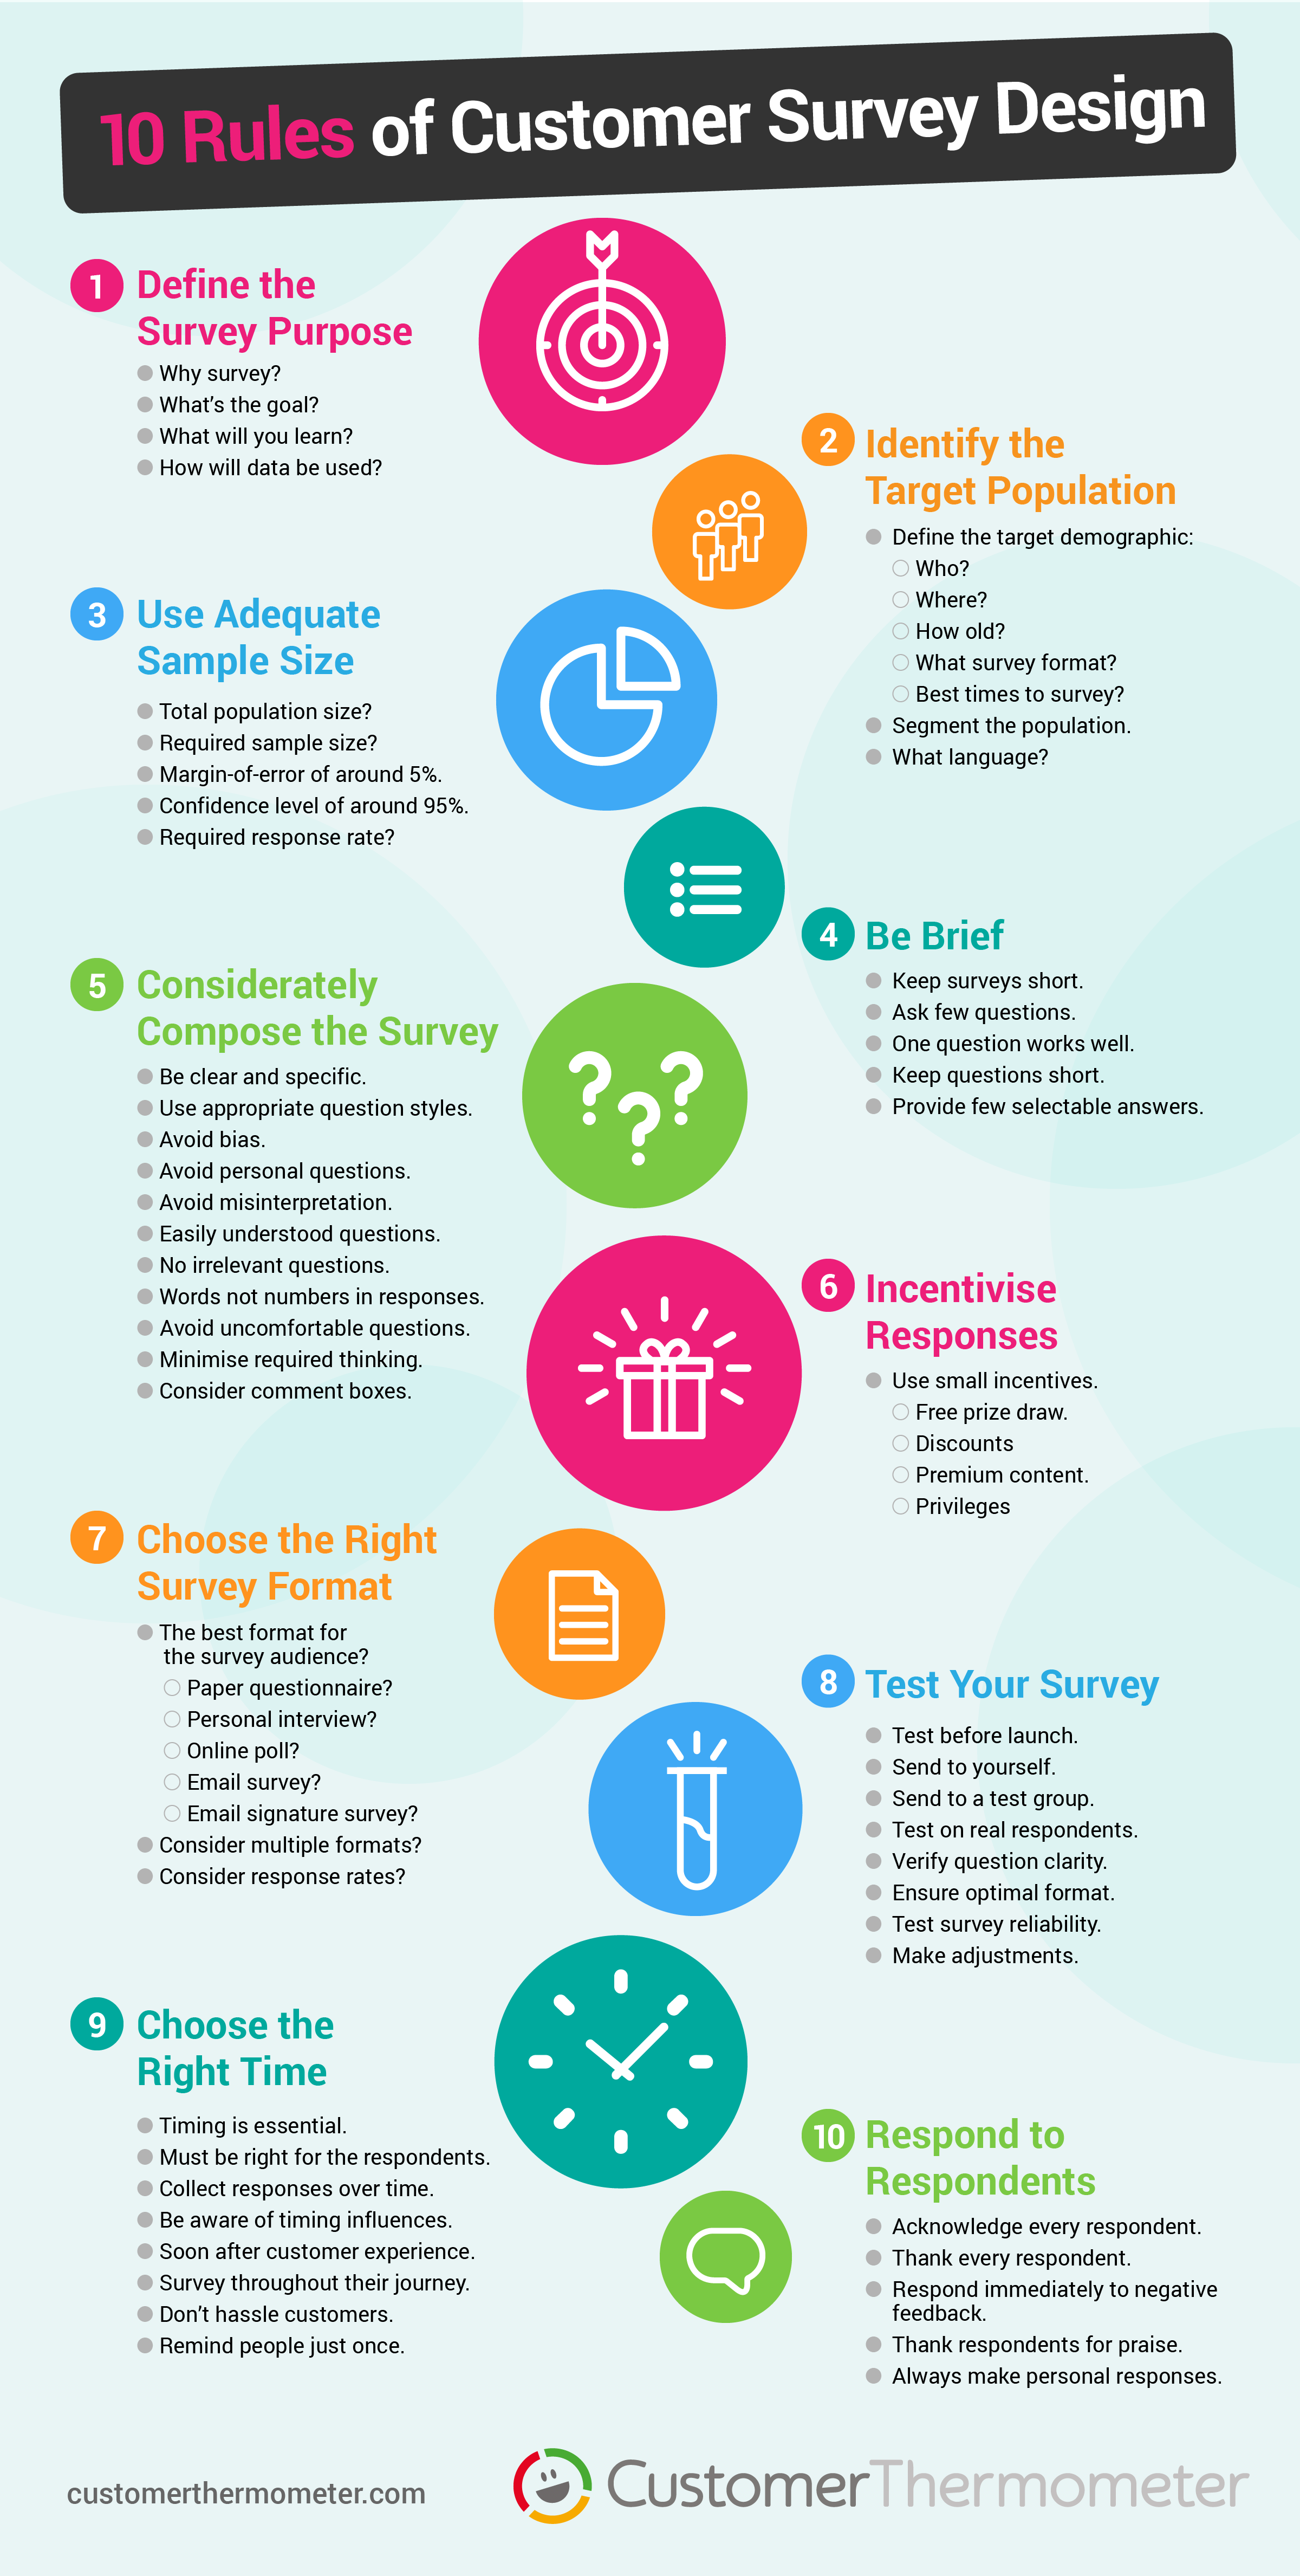 10 Rules of Customer Survey Design - Customer Thermometer